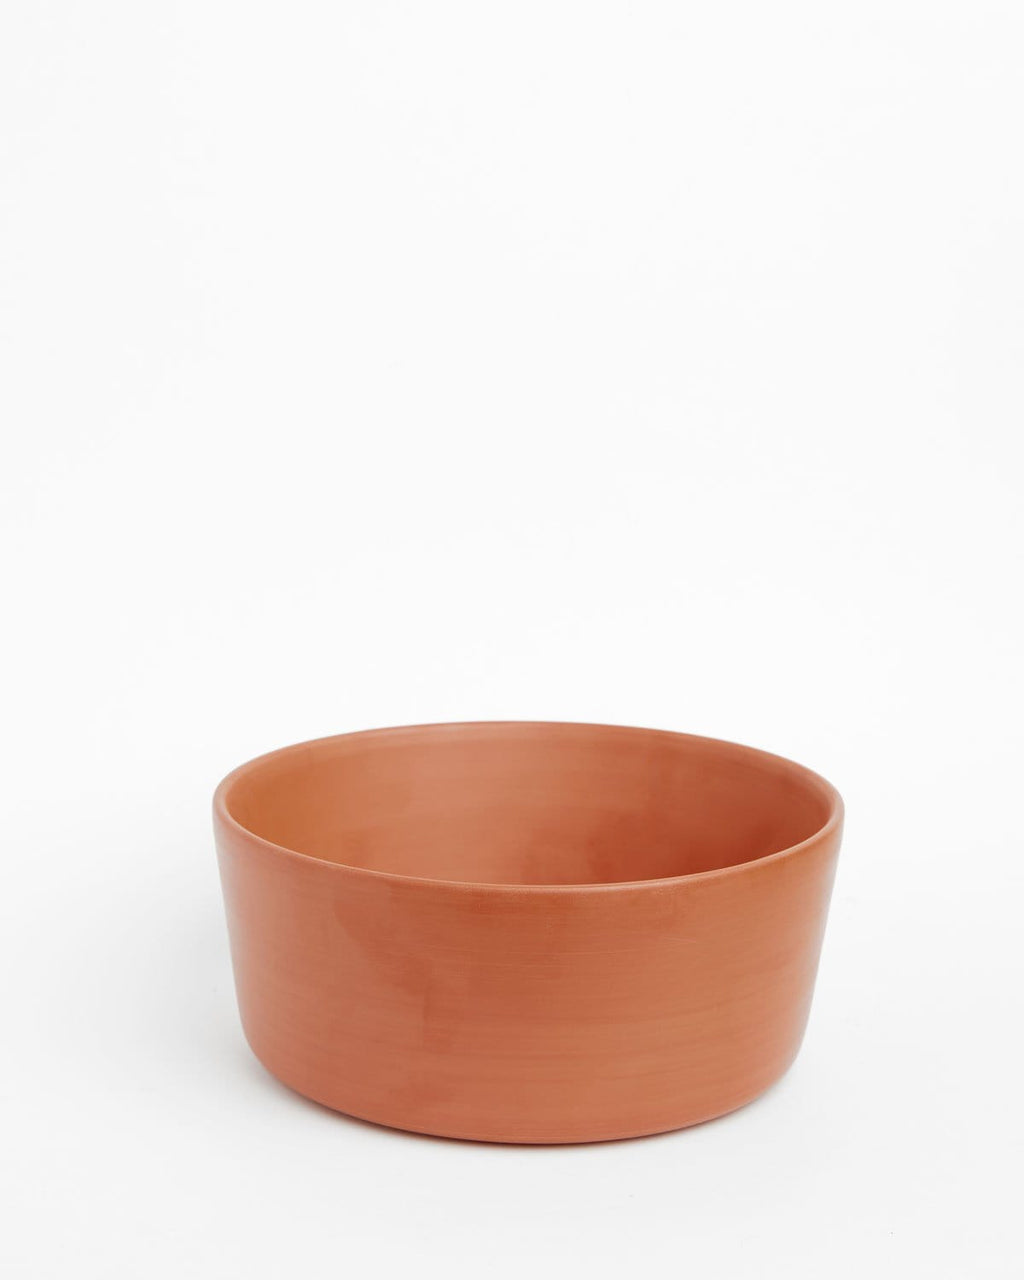 "Wren: Soft-as-Silk Terracotta Pot 3""H x 6.5""D"